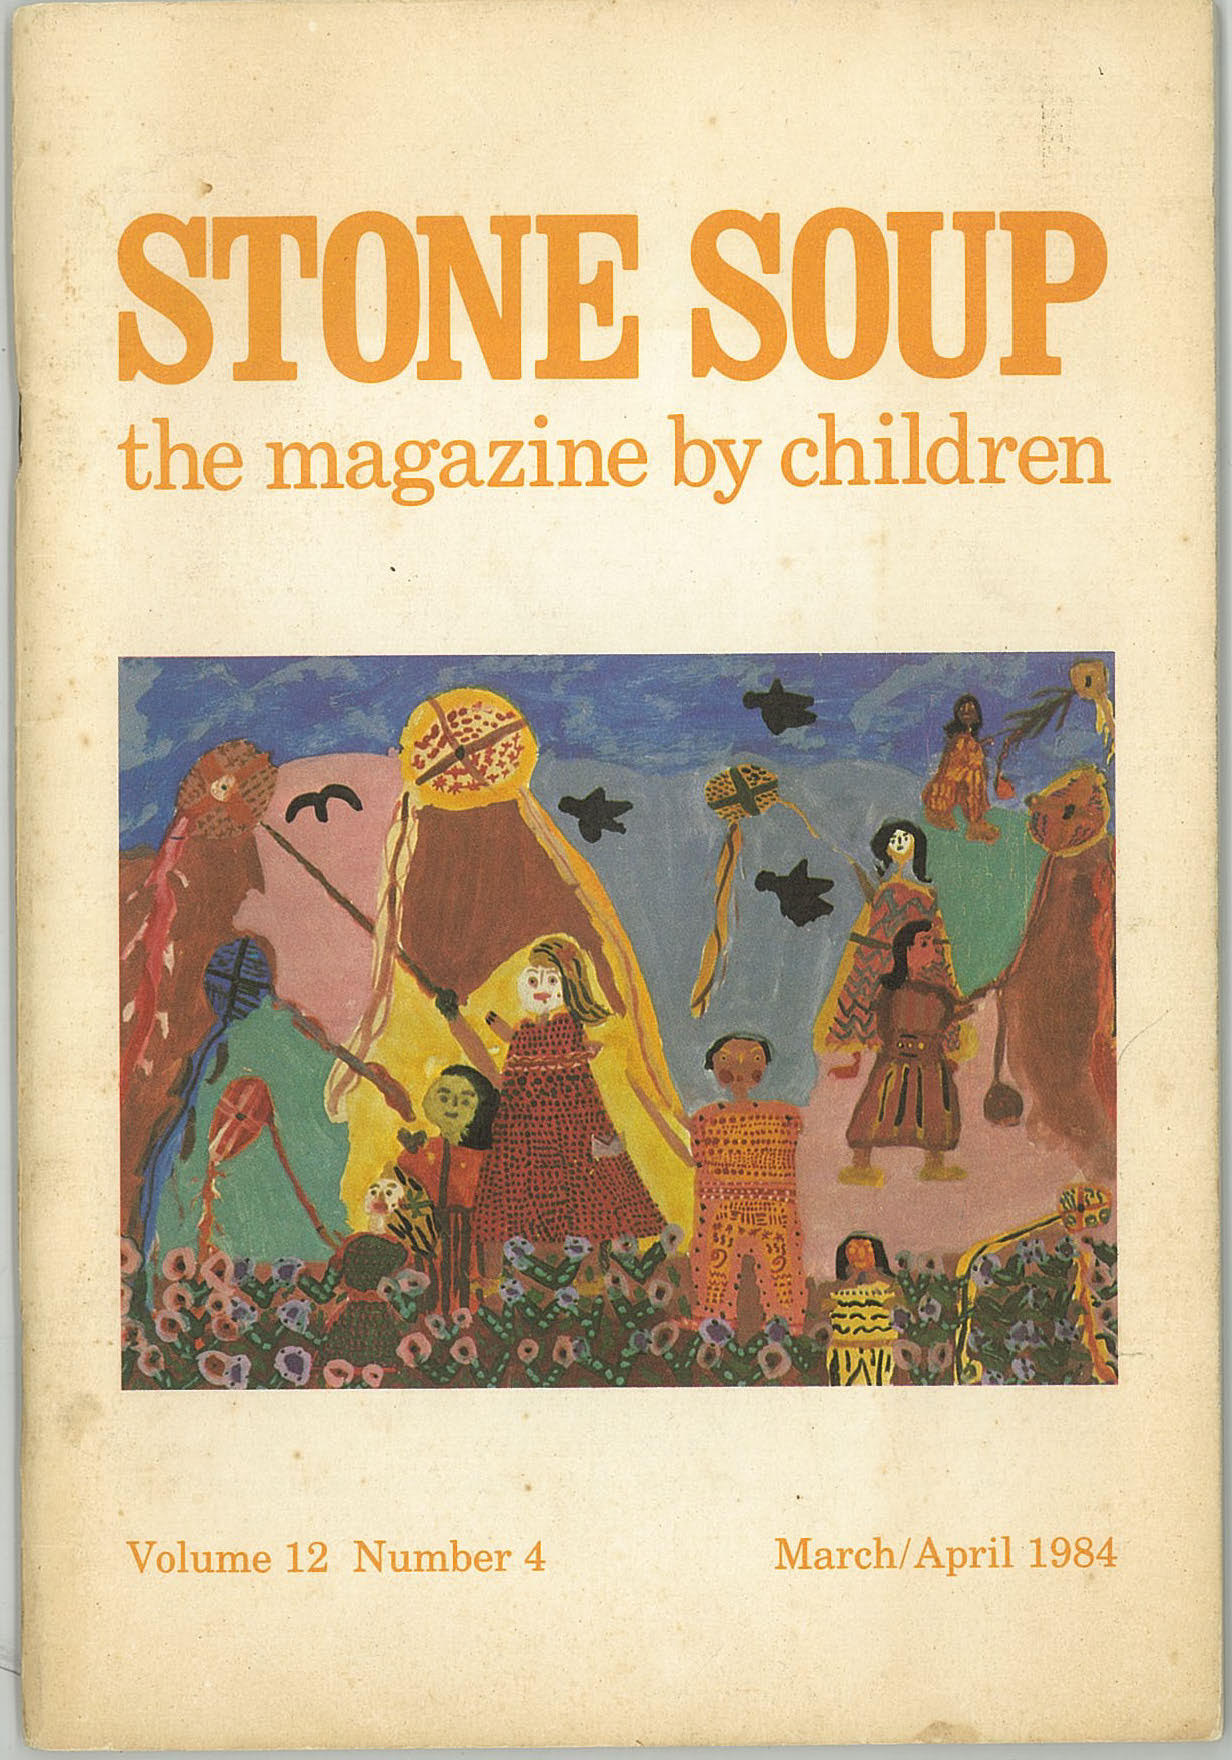 My poem in Stone Soup and its cover.